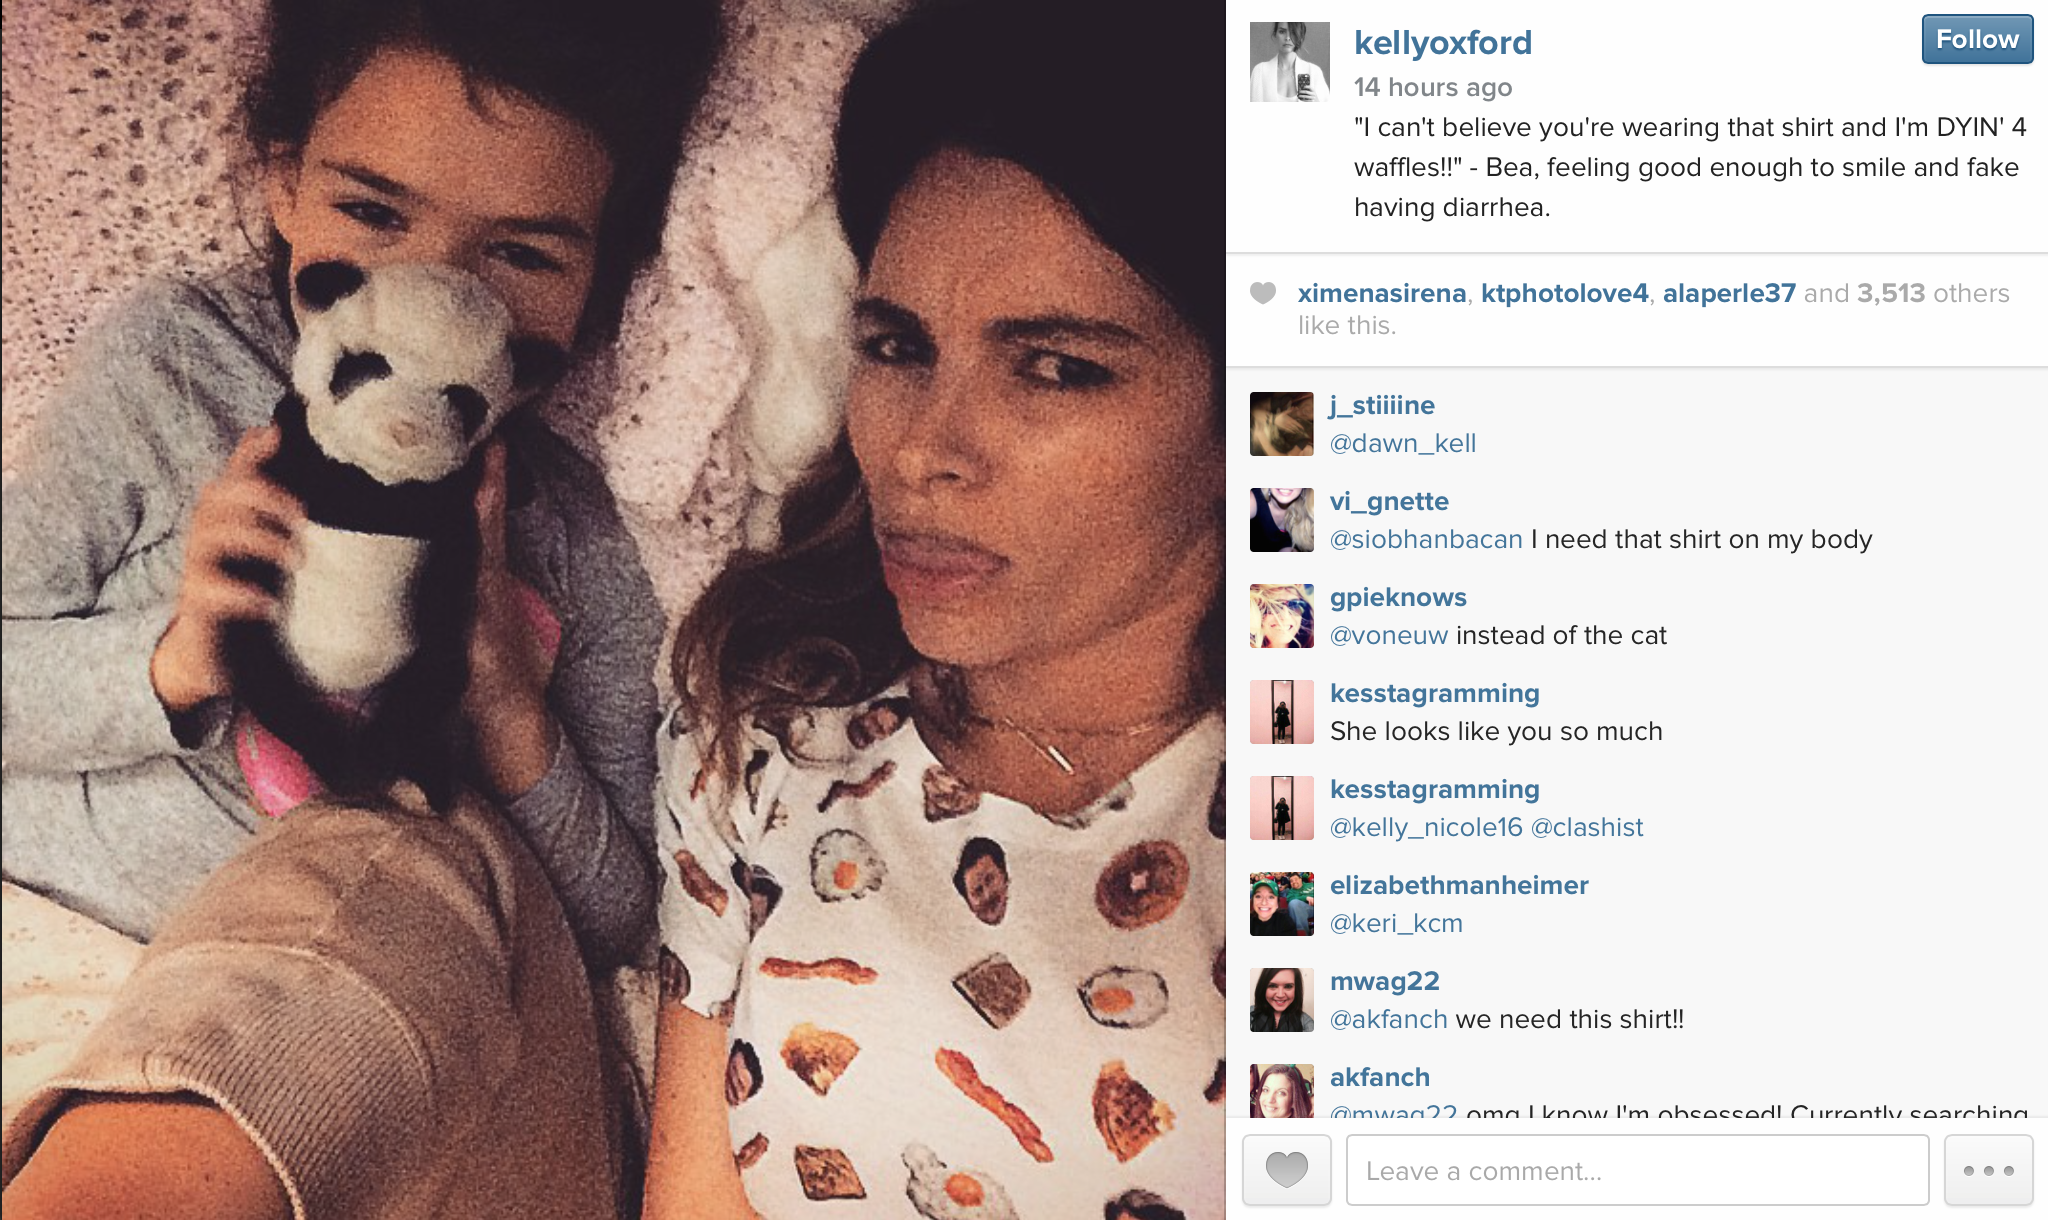 Kelly Oxford - @kellyoxford - 3.11.png